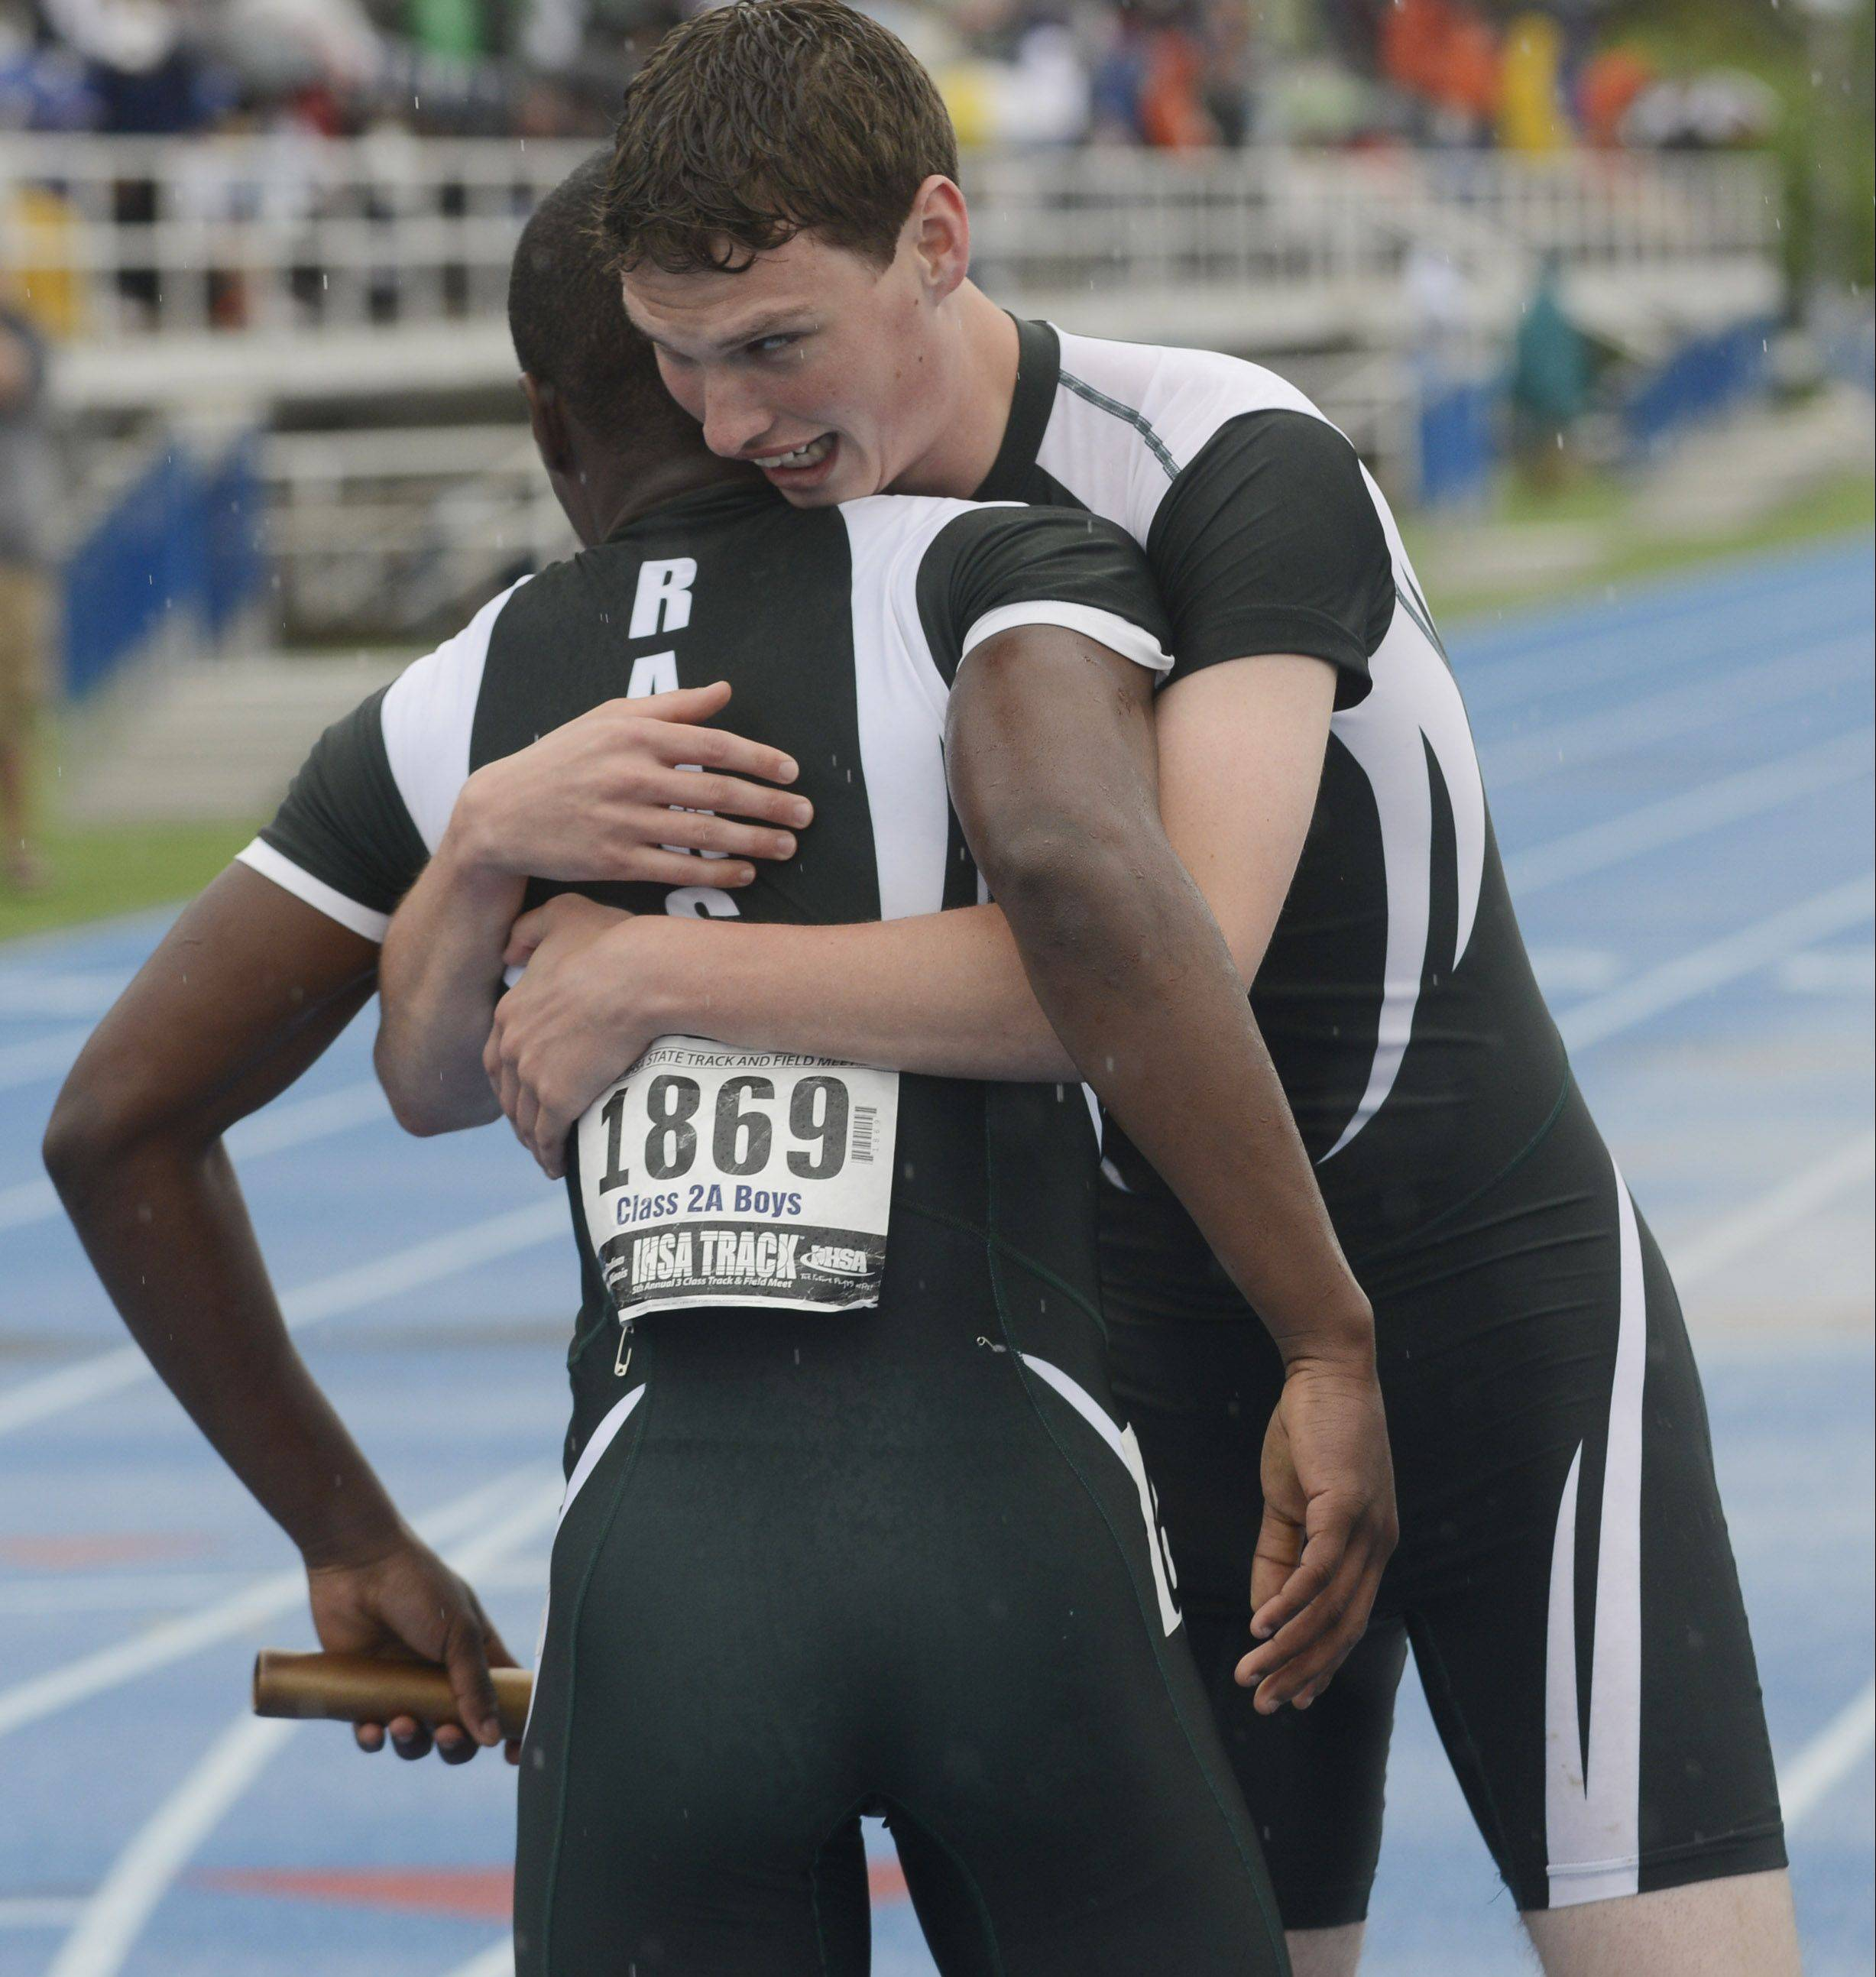 Grayslake Central's Matt Weatherhead, right, hugs teammate Dimitri Dawson at the finish line after the Rams won the Class 2A 4x200-meter relay during the boys track state finals in Charleston on Saturday.